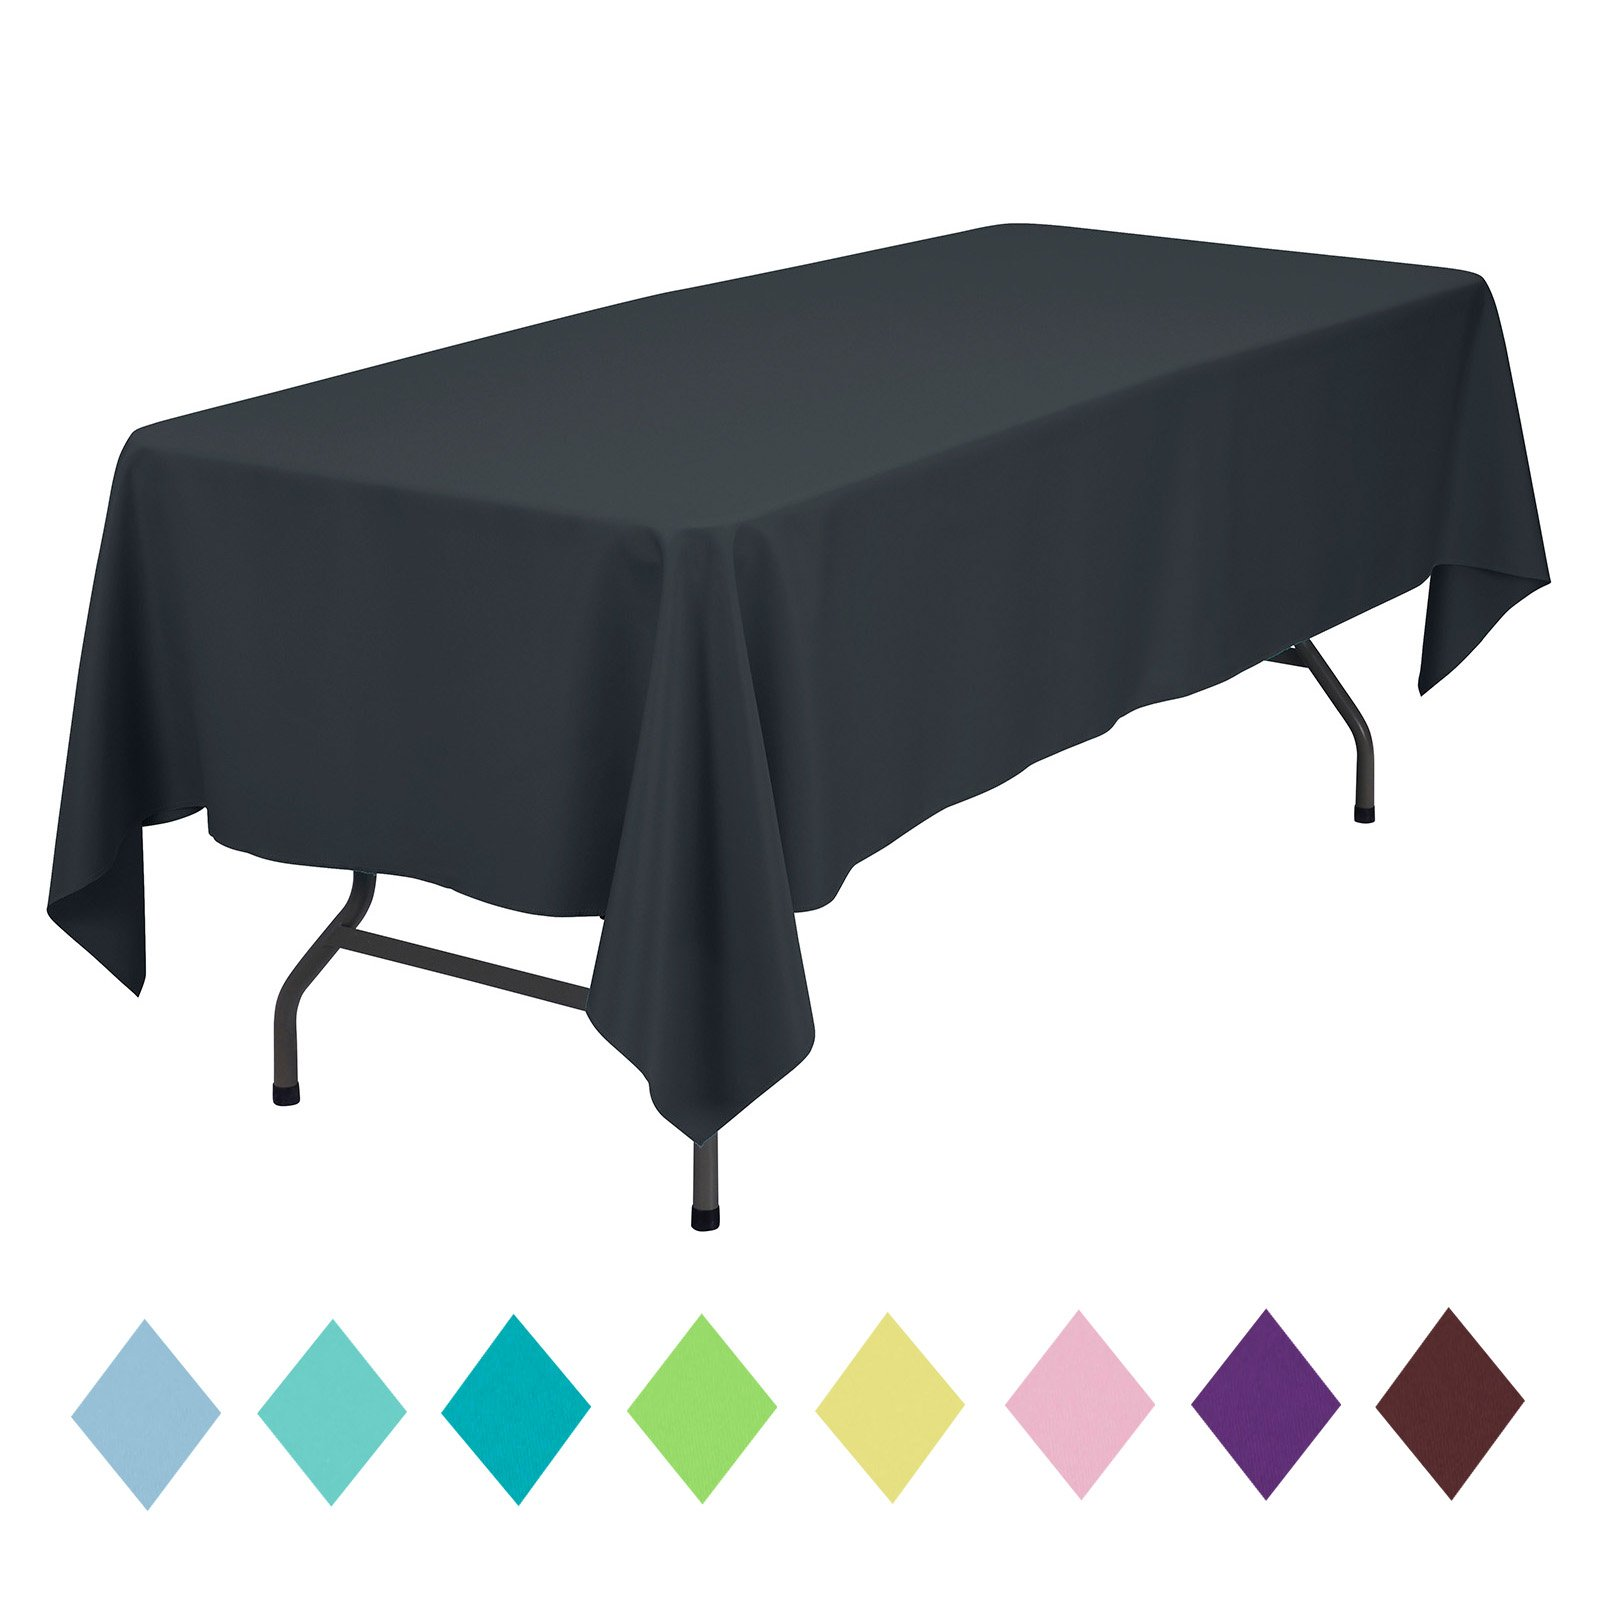 VEEYOO Rectangle Table Cloth Solid Color Polyester Tablecloth for Baby Shower Oblong Dinner Table Cover for Wedding Party Restaurant Outdoor Picnic (Dark Gray, 60x102 inch)